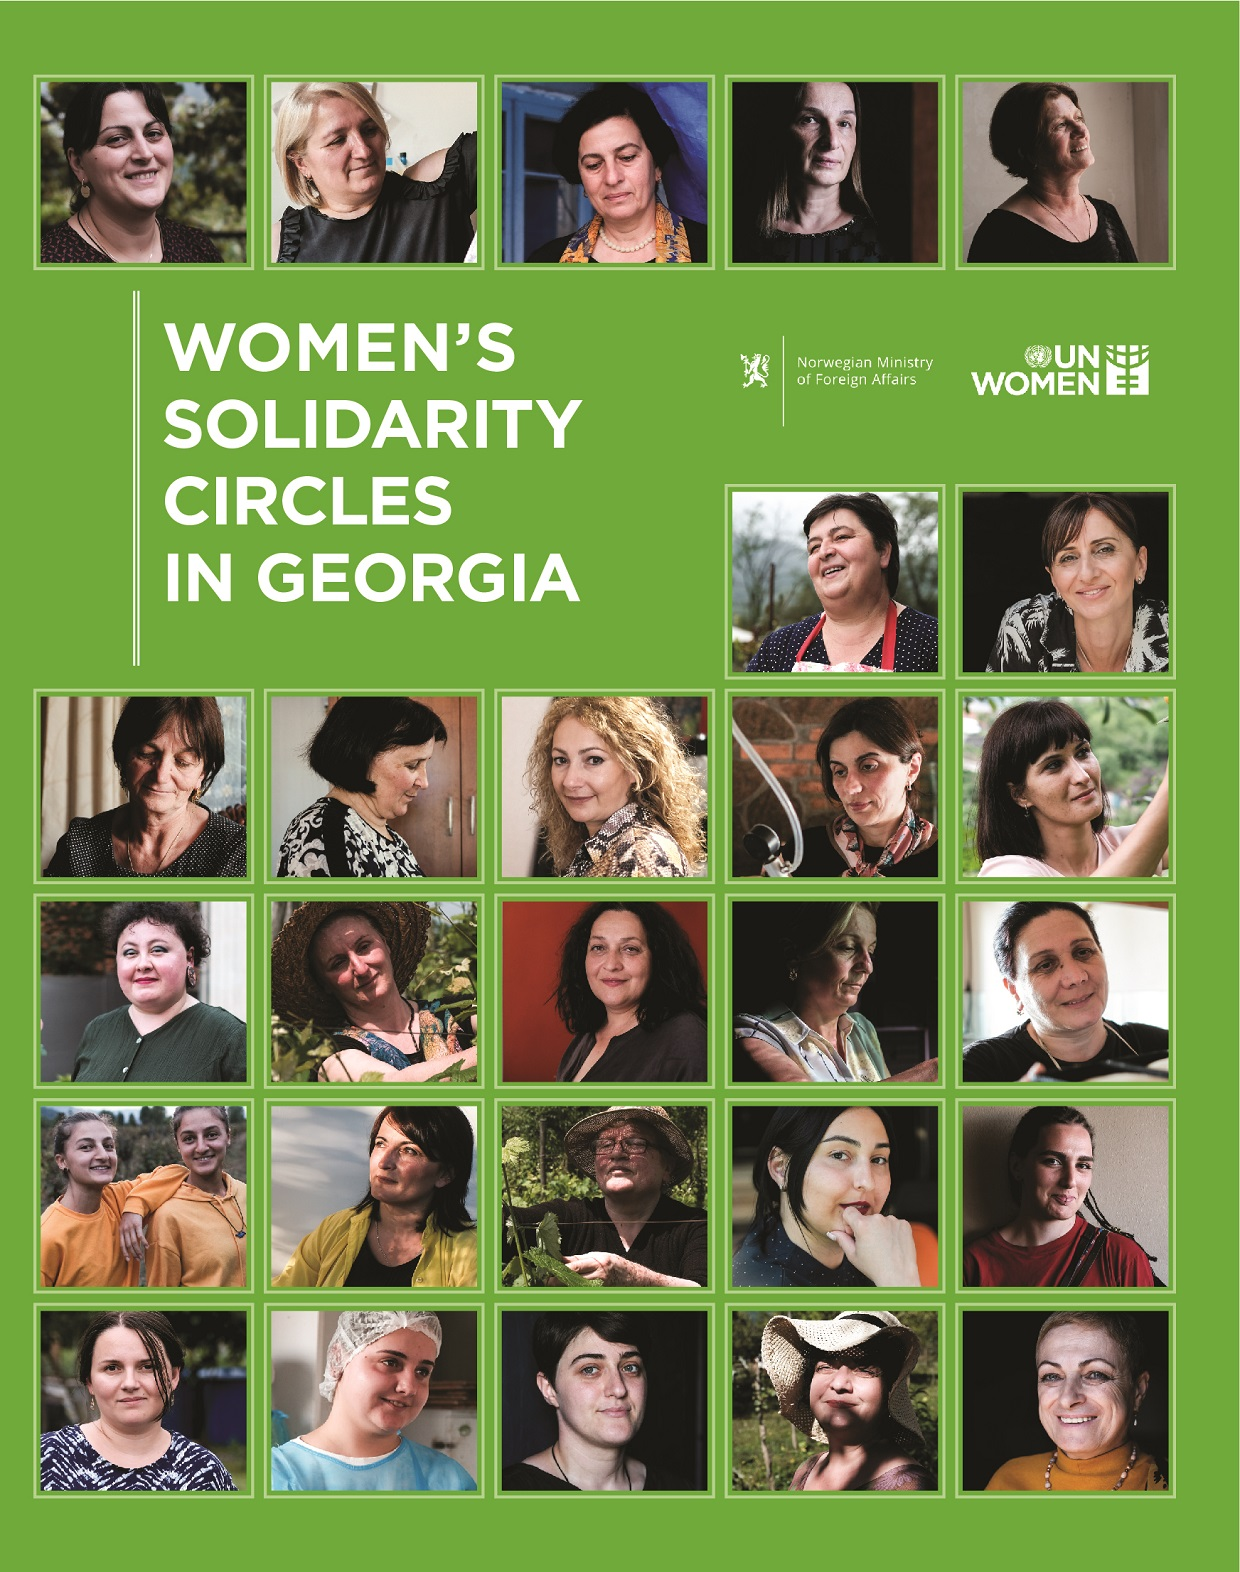 Women's Solidarity Circles in Georgia